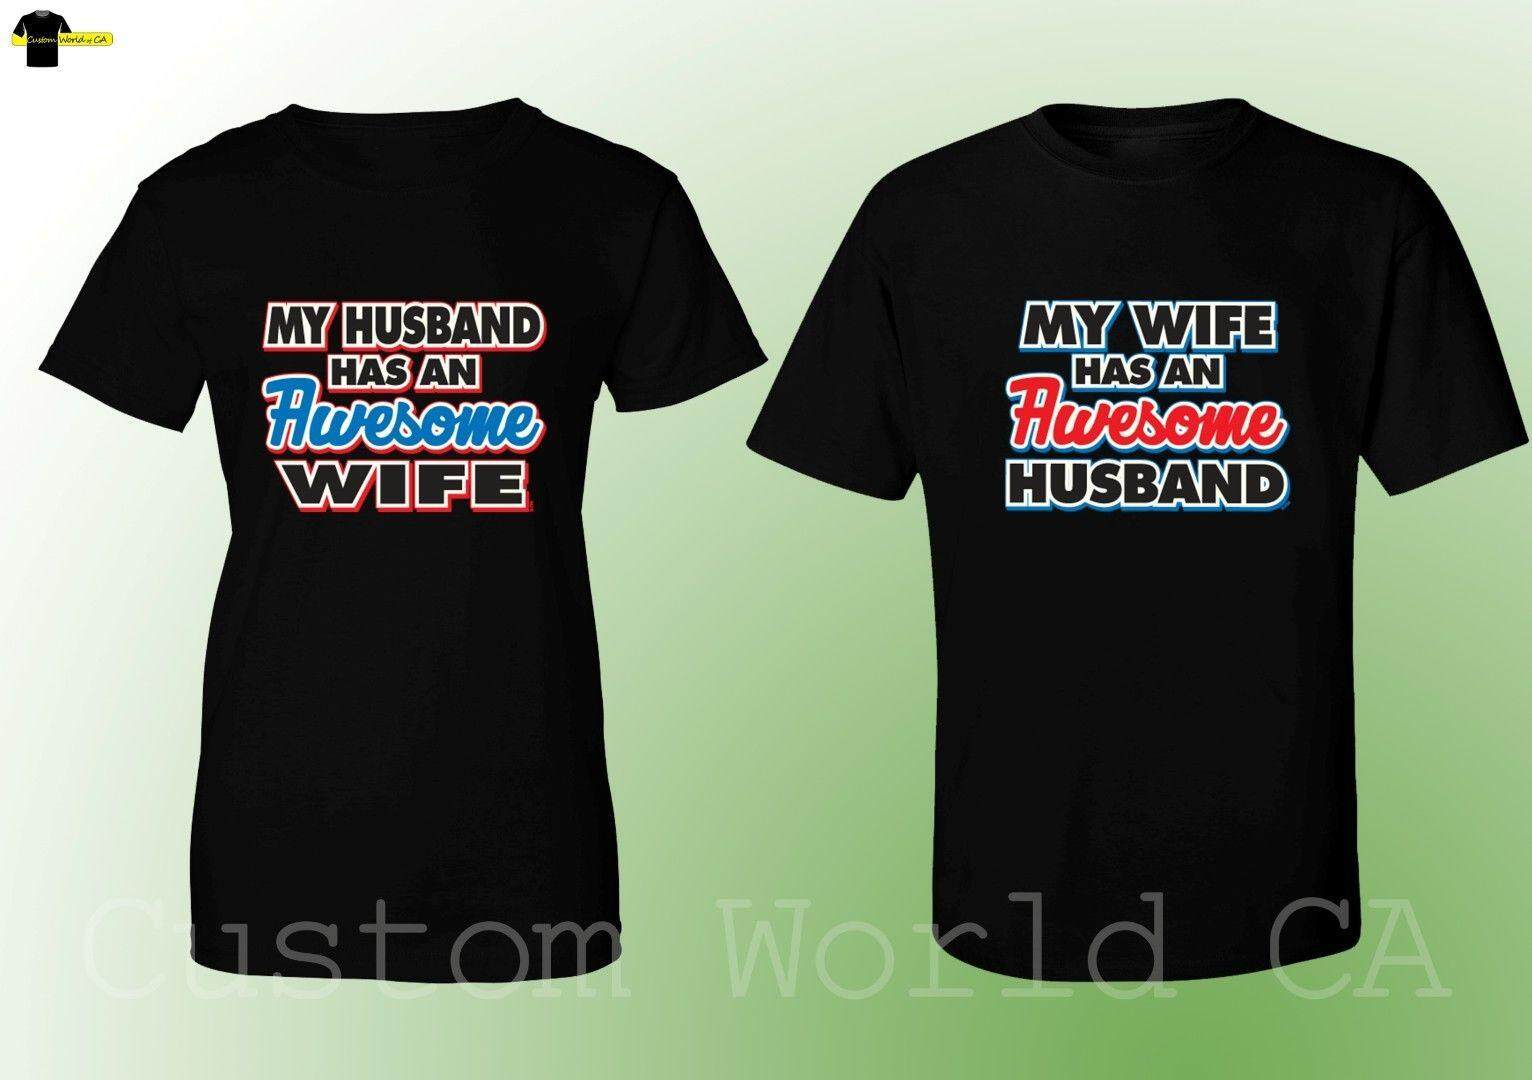 e1cc40a1e HT 2019 Hot Sale 100% cotton Couple Matching T-Shirts - My Husband Wife